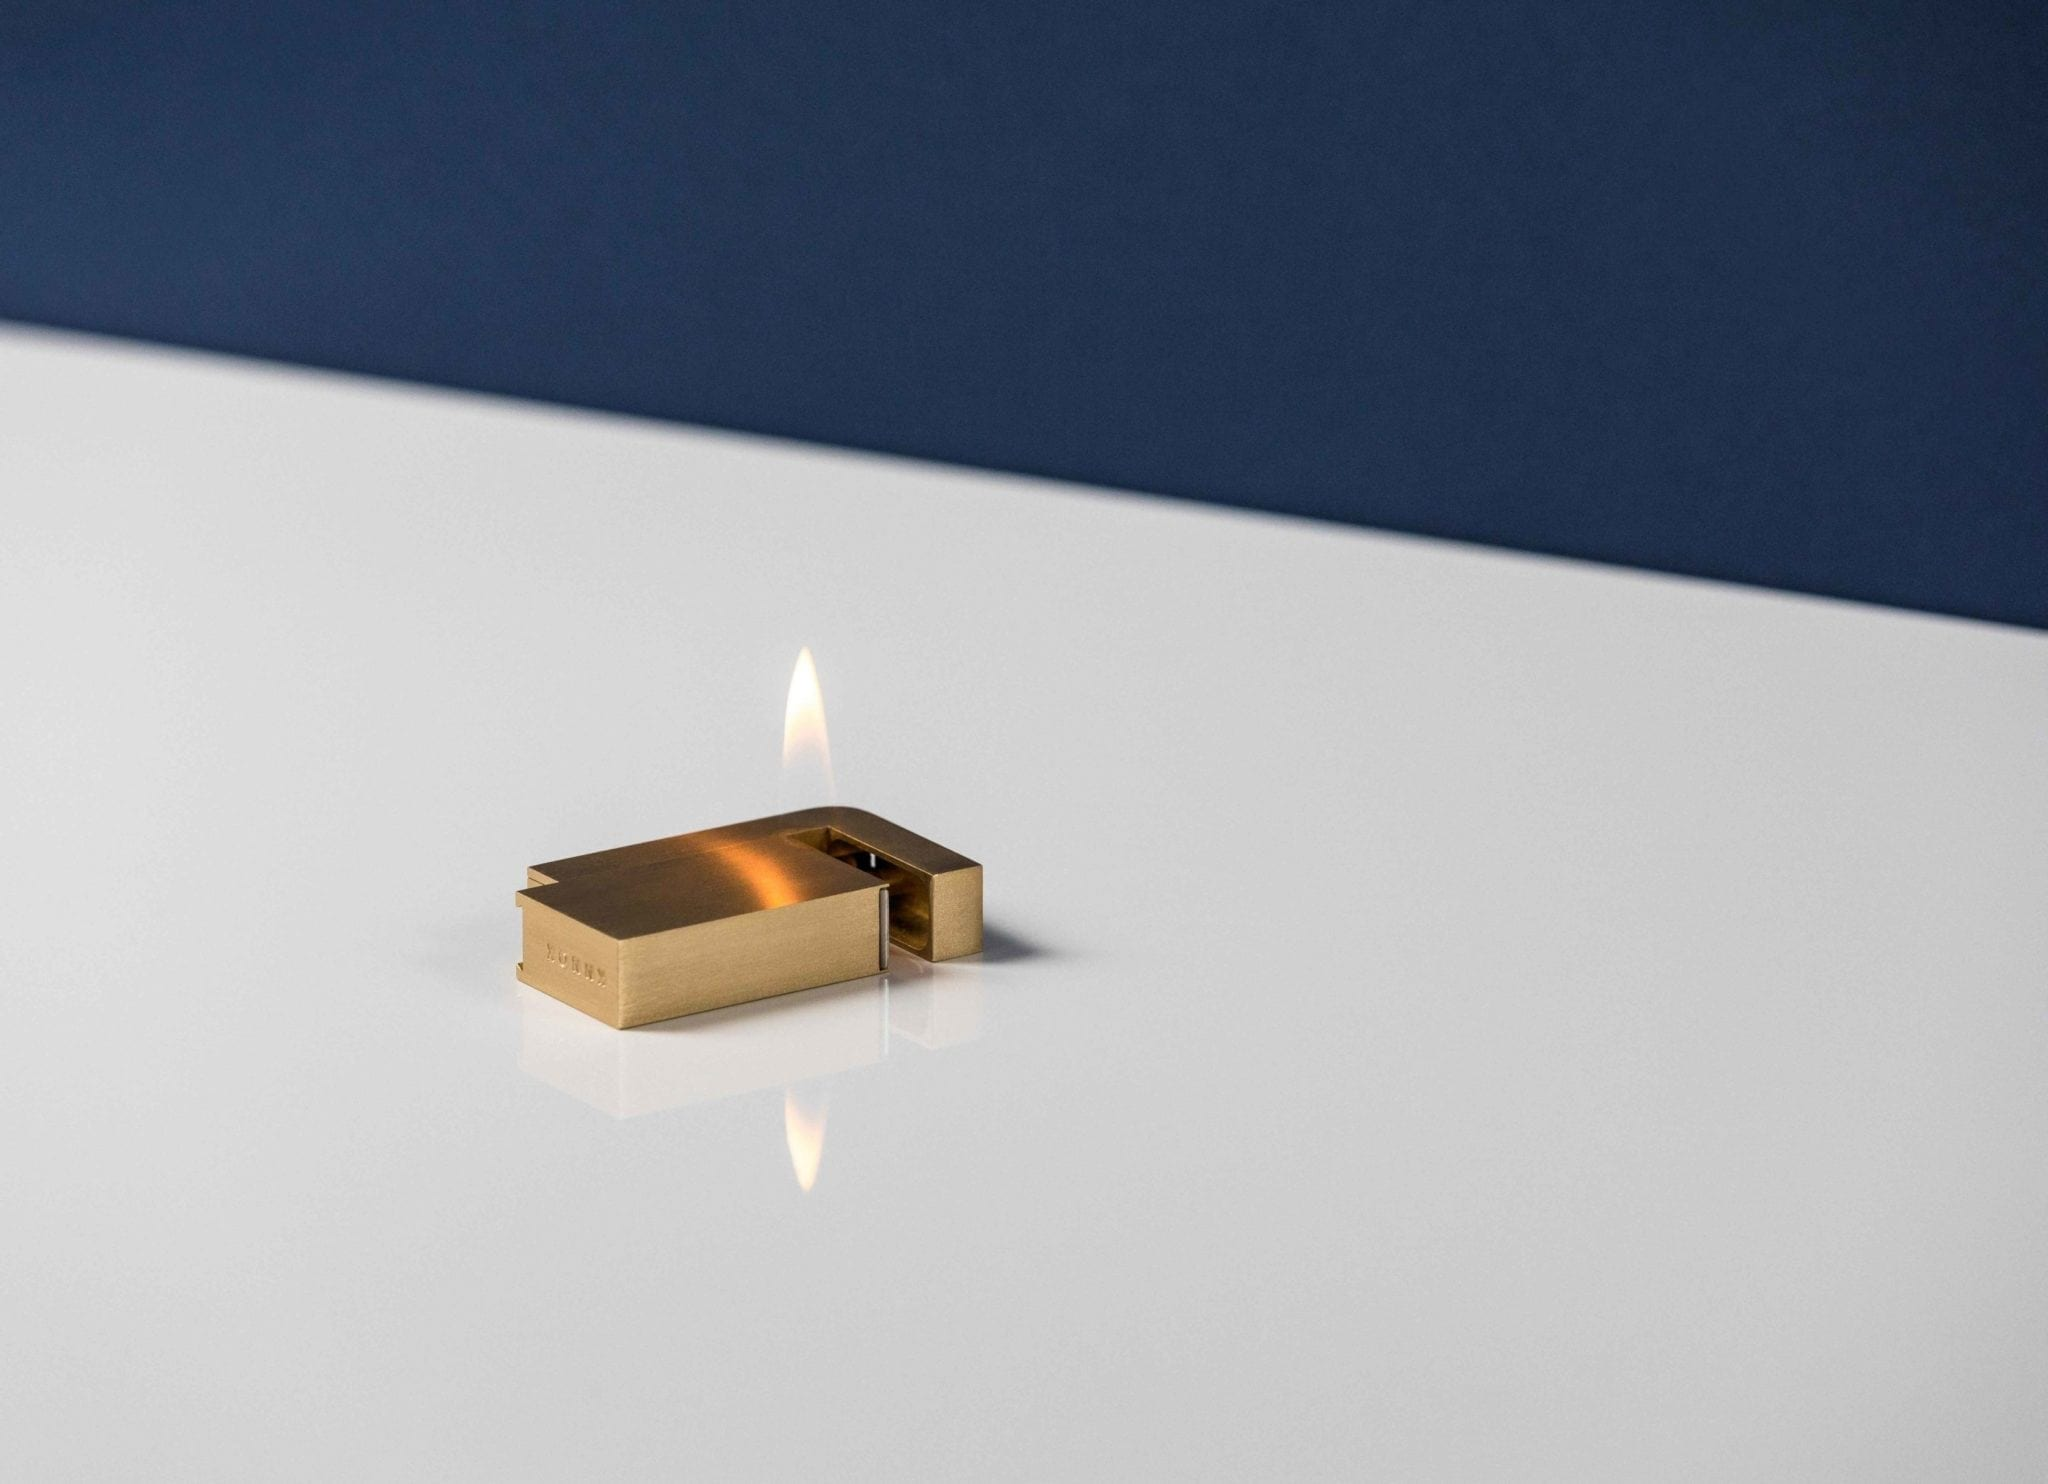 Knnox minimal luxury lighter